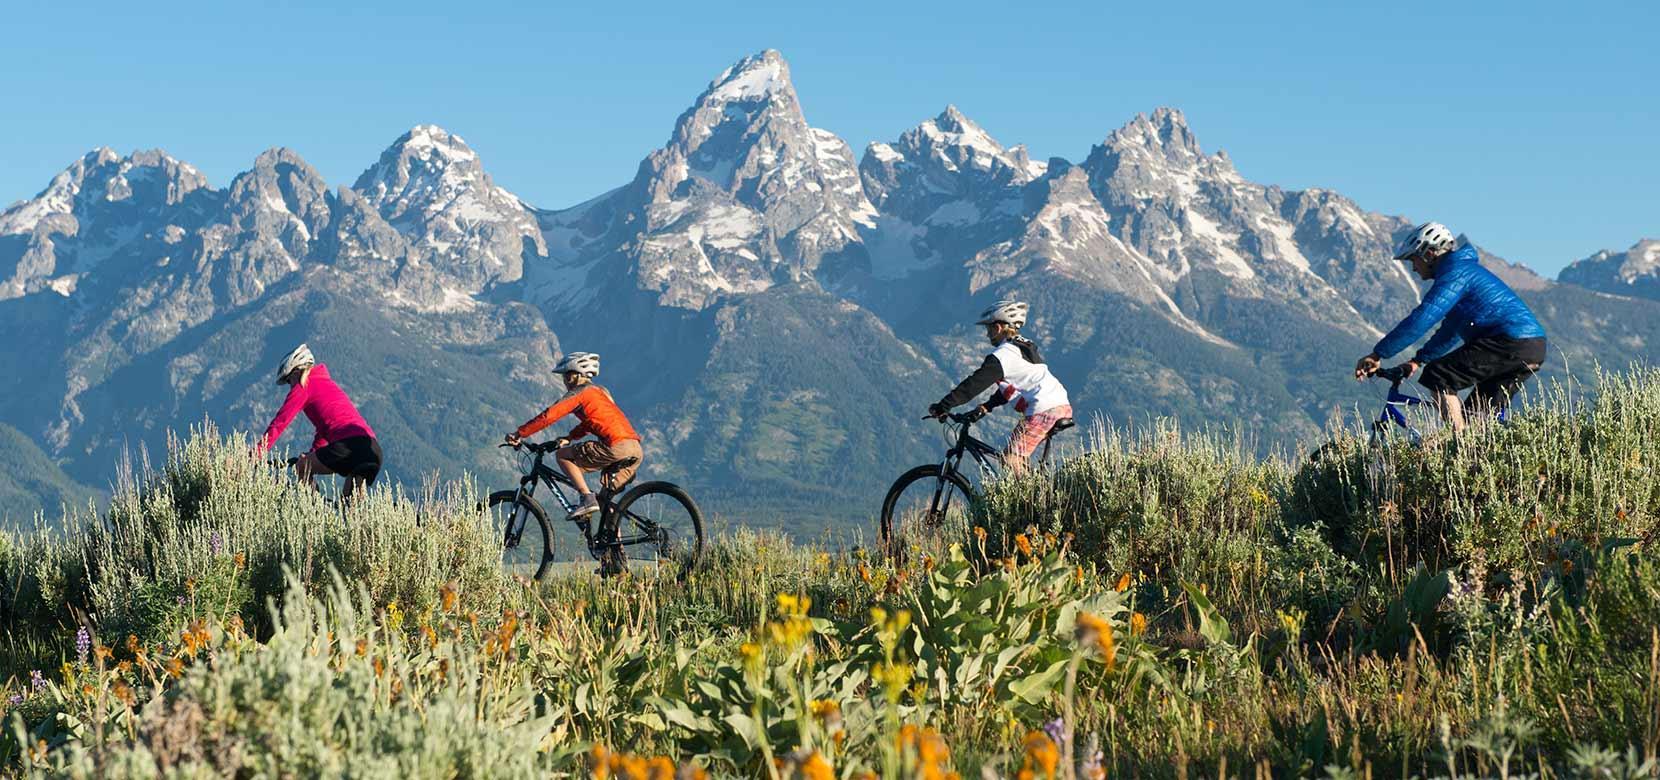 Jackson Hole Biking & Pathways